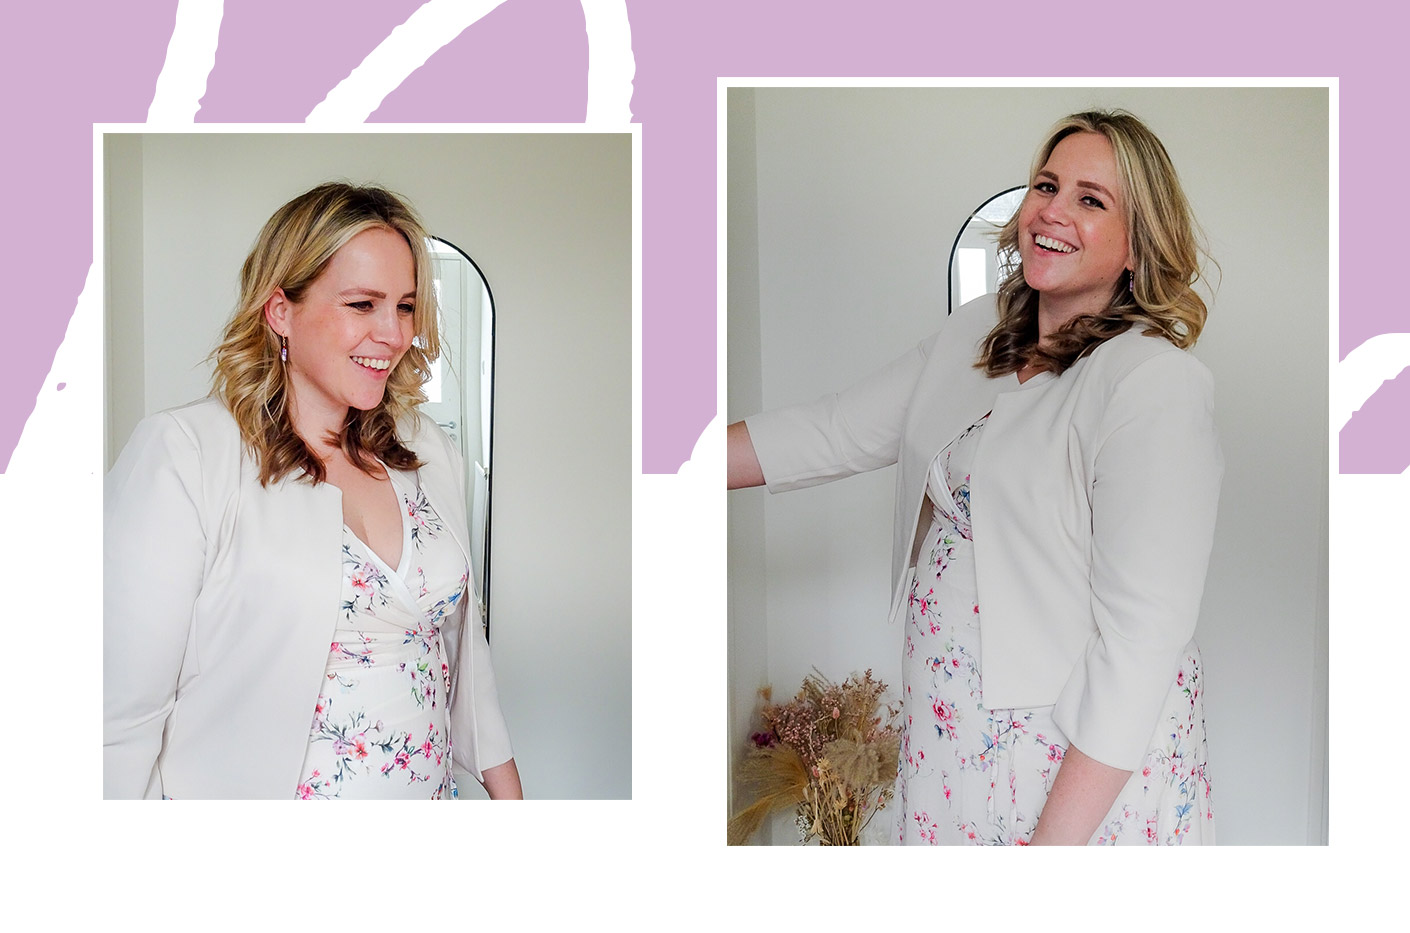 Margo smiling wearing a long LolaLiza dress with small floral print and beige short blazer without buttons.